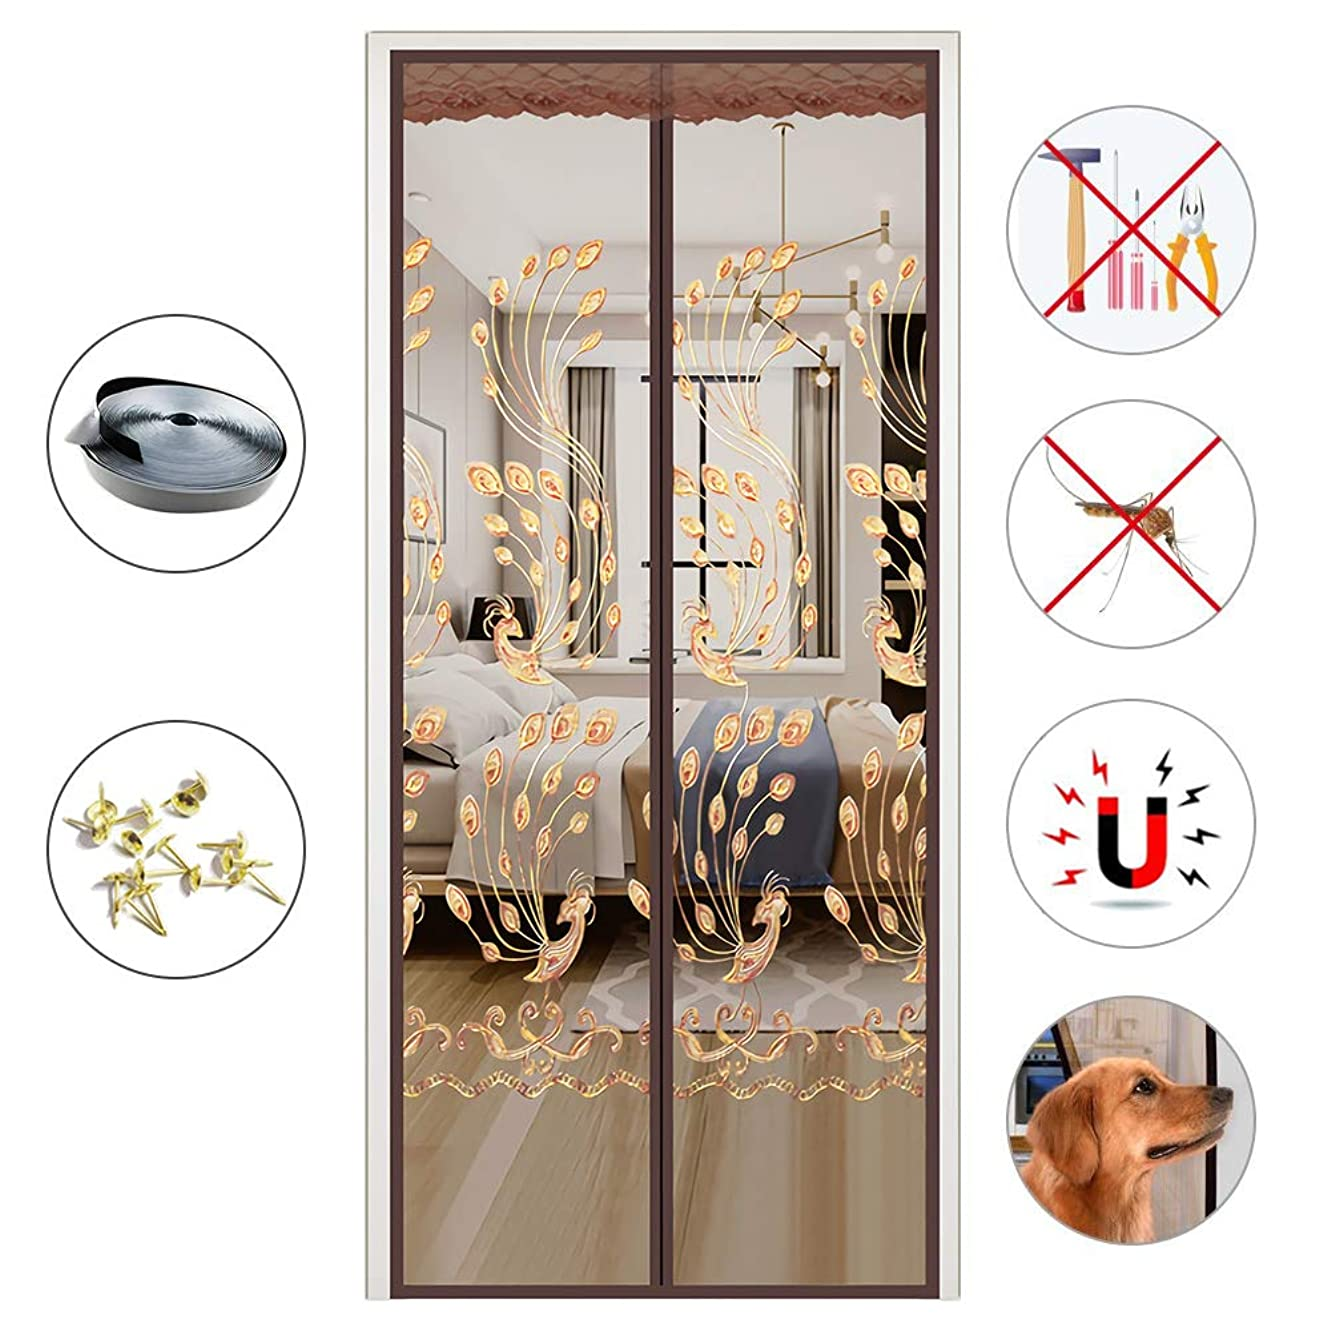 PeiQiH Magnetic Screen Door, Anti Mosquito Embroidery Mesh Curtain Magnets Self Closing Quiet Close Heavy Duty Full Frame Hook & Loop-Coffee 150x200cm(59x79in)